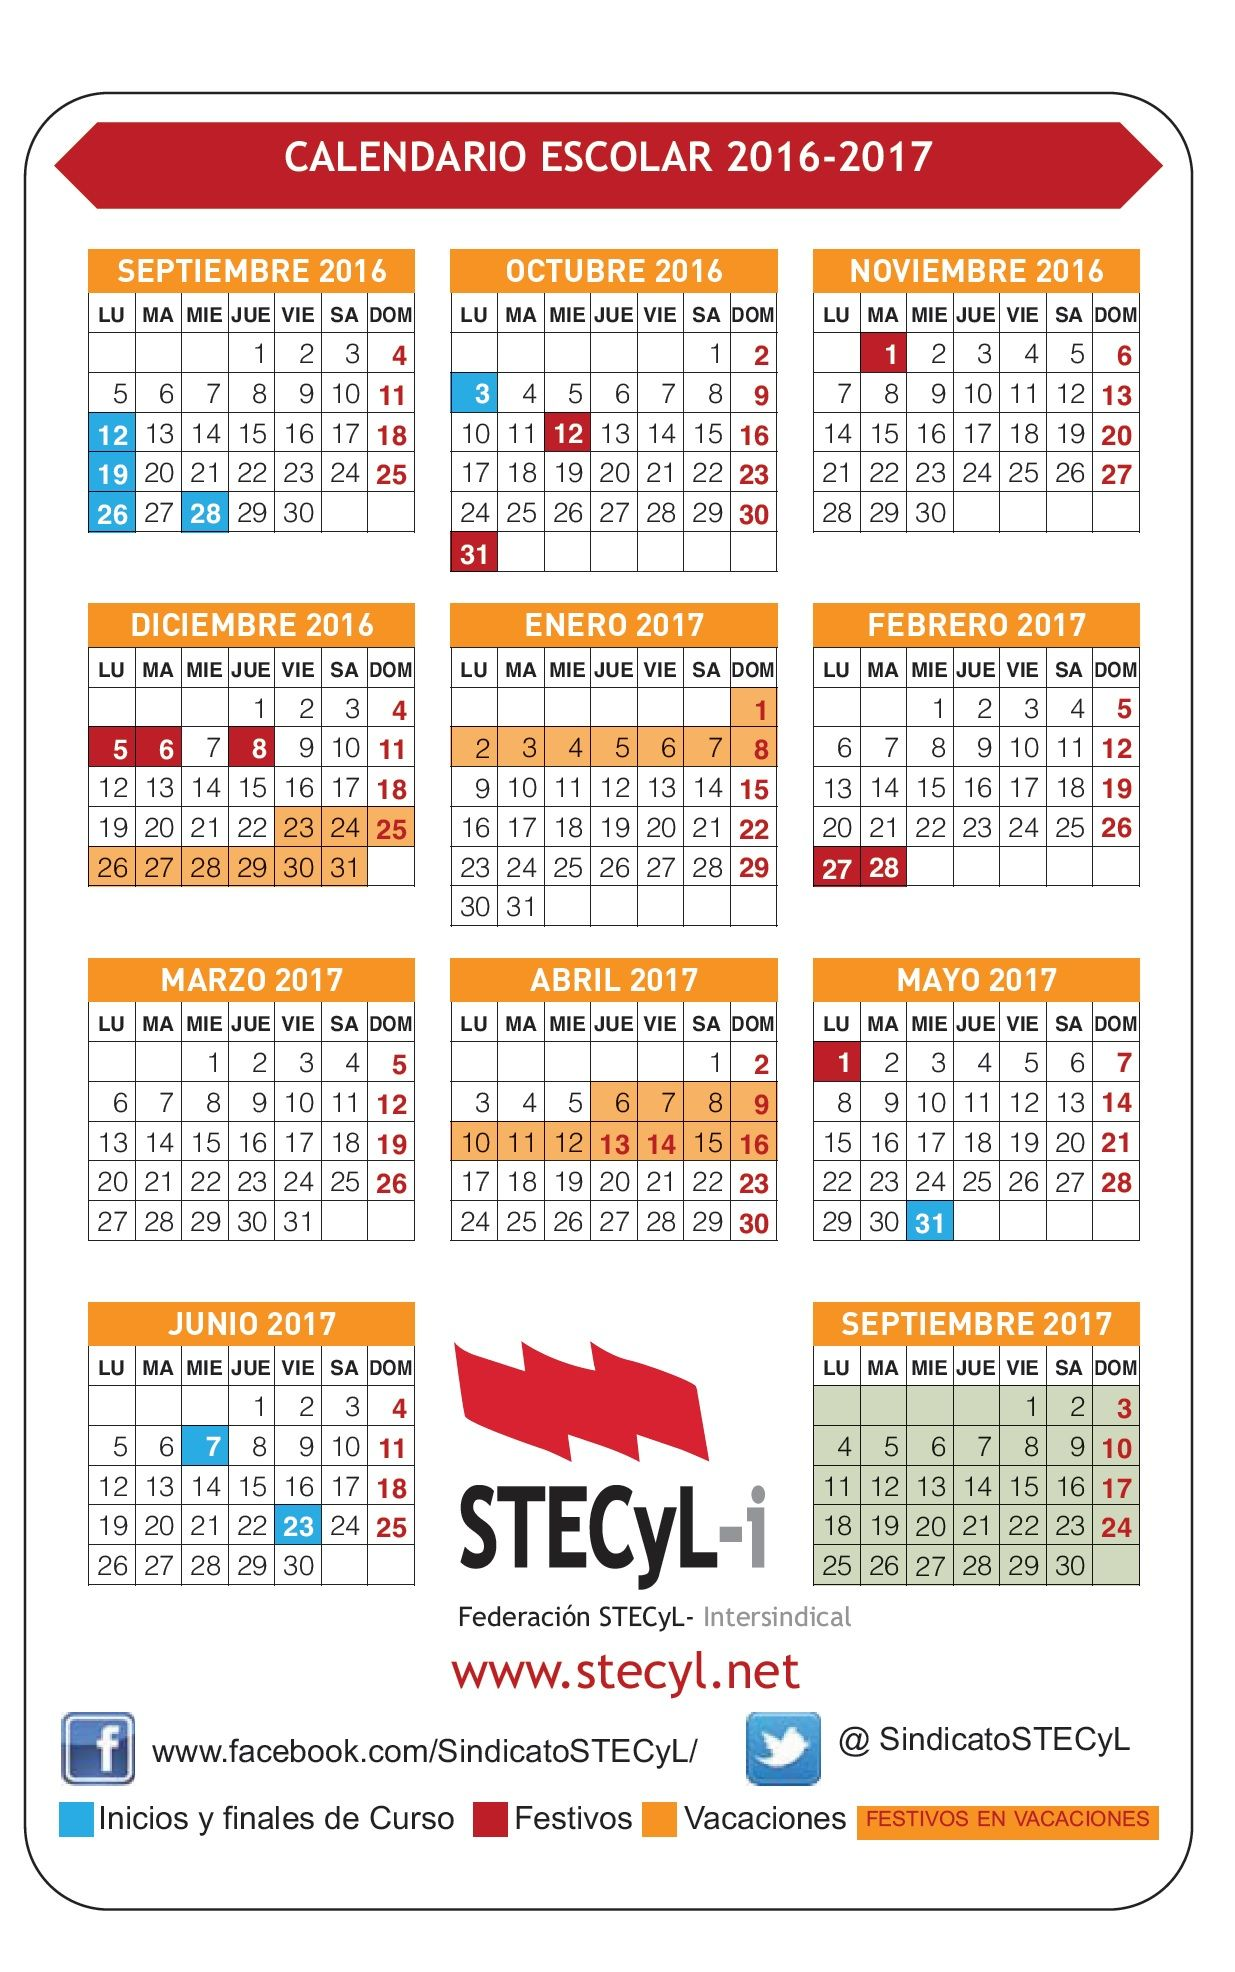 Calendario Escolar Castilla Leon.Calendario Escolar 2016 17 Ensenanzas No Universitarias Cyl Stecyl I